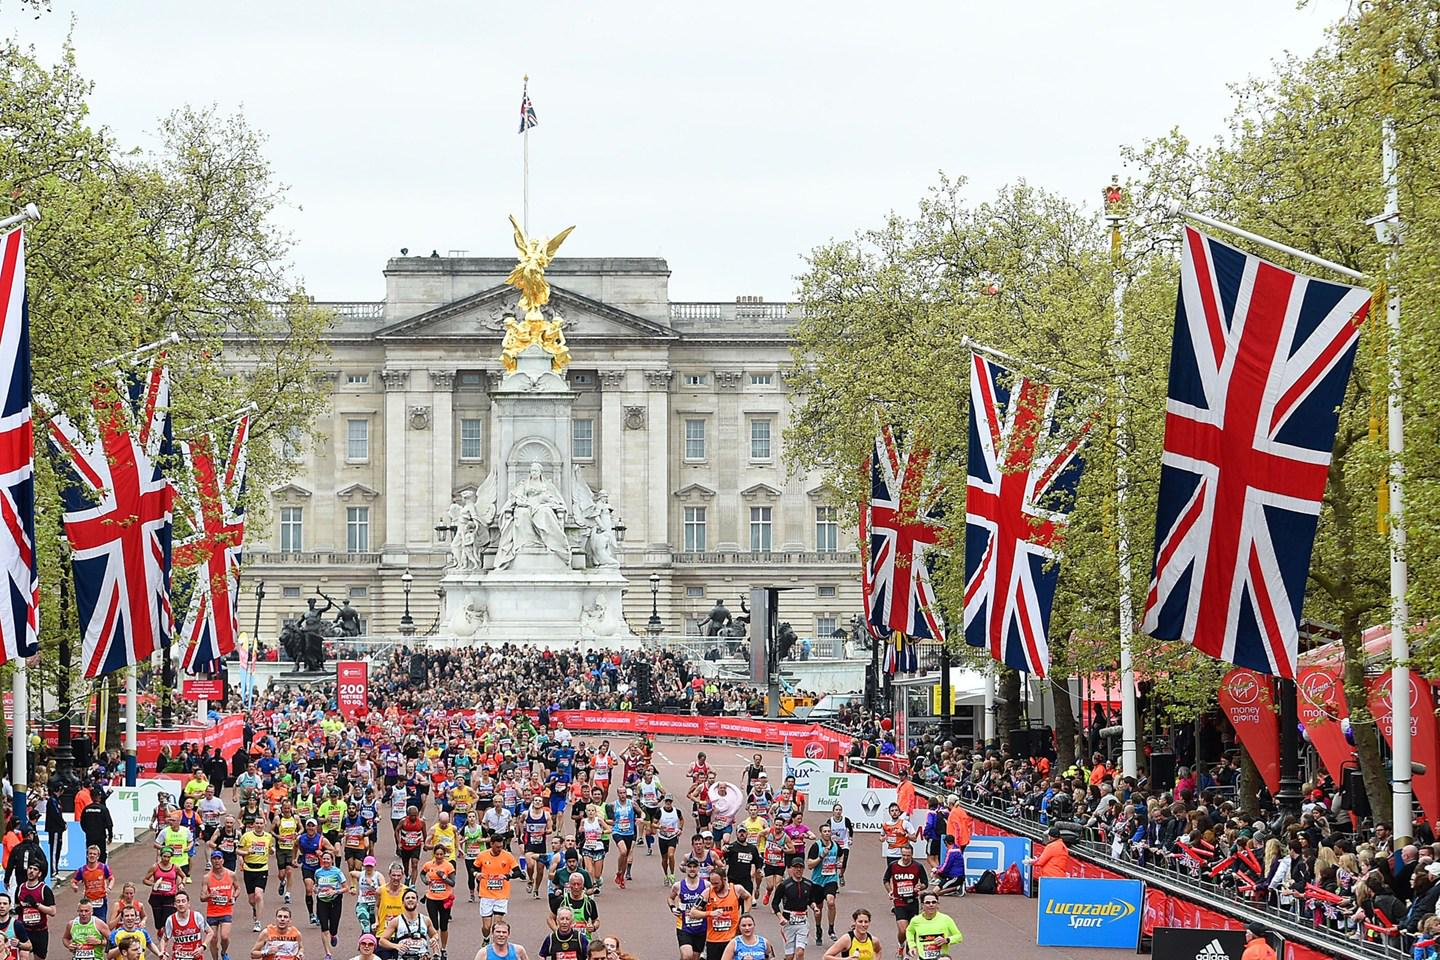 DON'T MISS: All the beautiful images (& model runners) from the London Marathon this weekend http://t.co/LOMGSVtF6V http://t.co/gaEpupmmNn